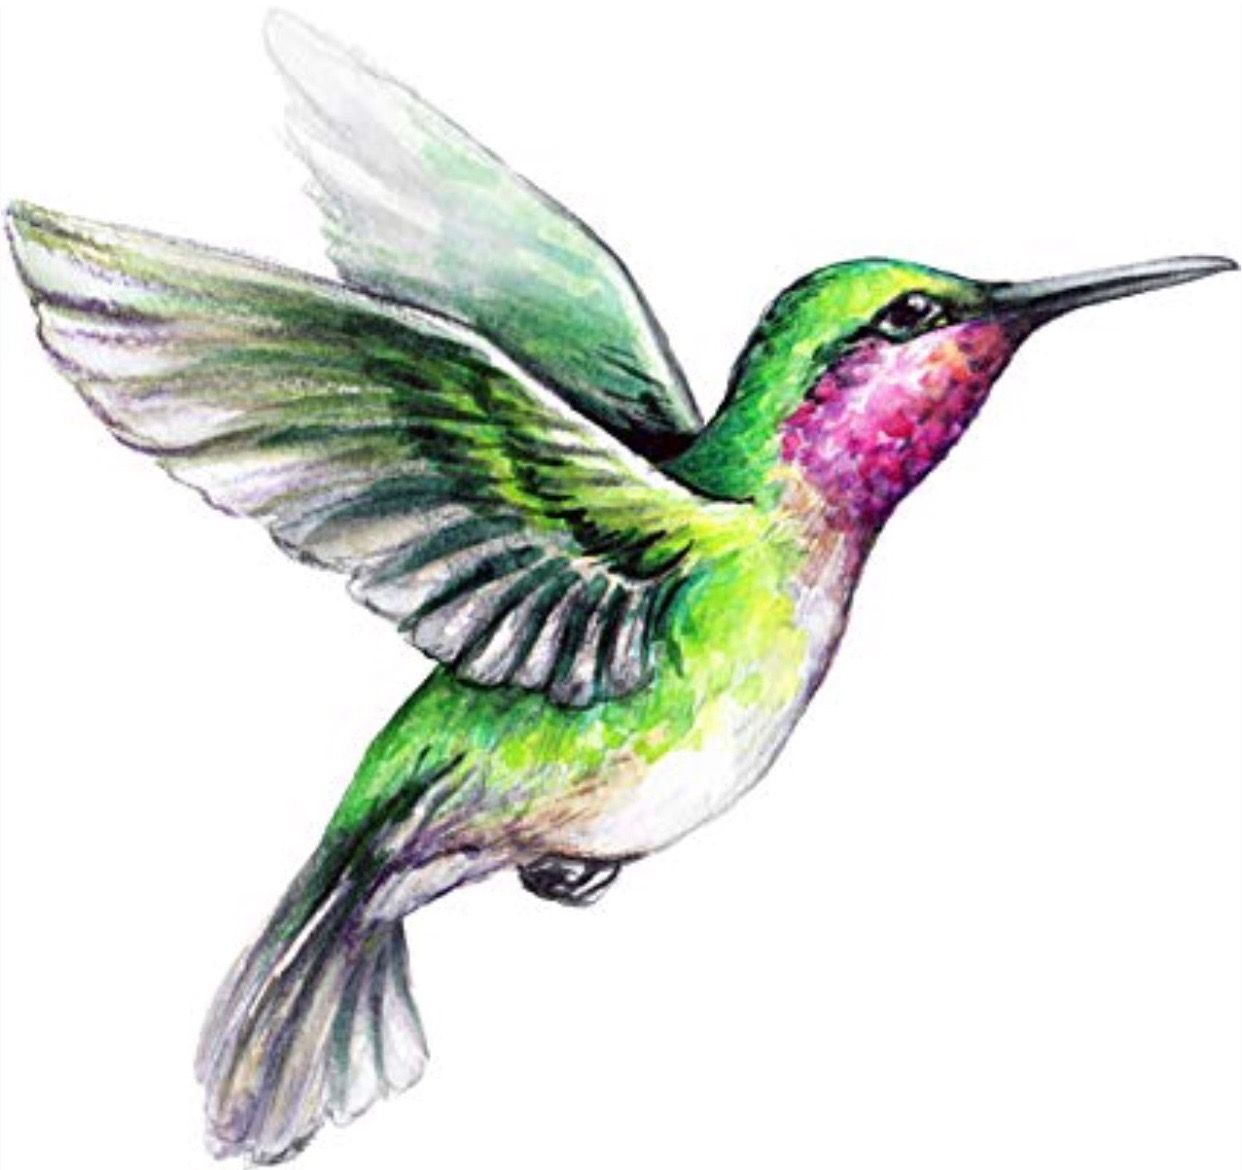 Hummingbird Hummingbird illustration, Bird drawings